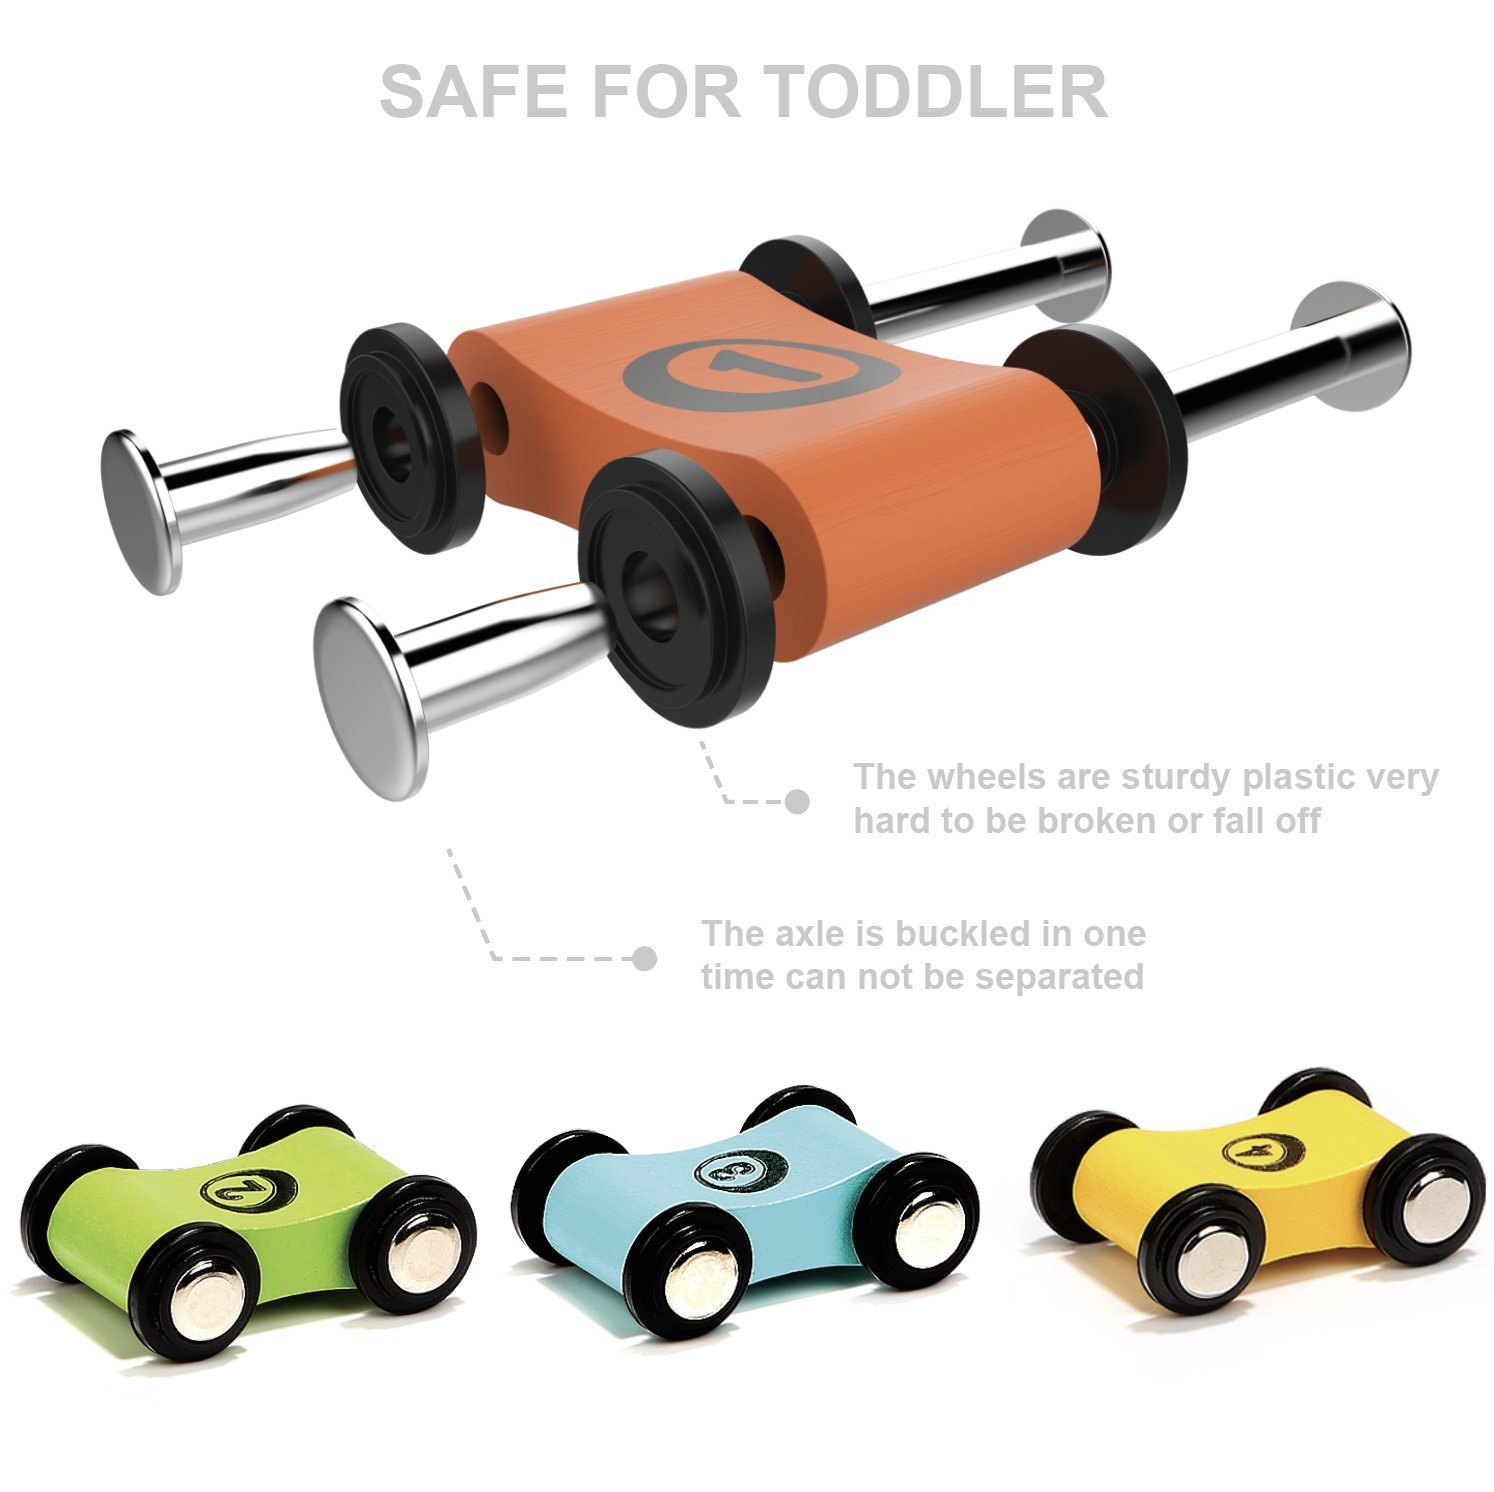 TOP BRIGHT Toddler Toys for 1 2 Year Old Boy and Girl Gifts Wooden Race Track Ca